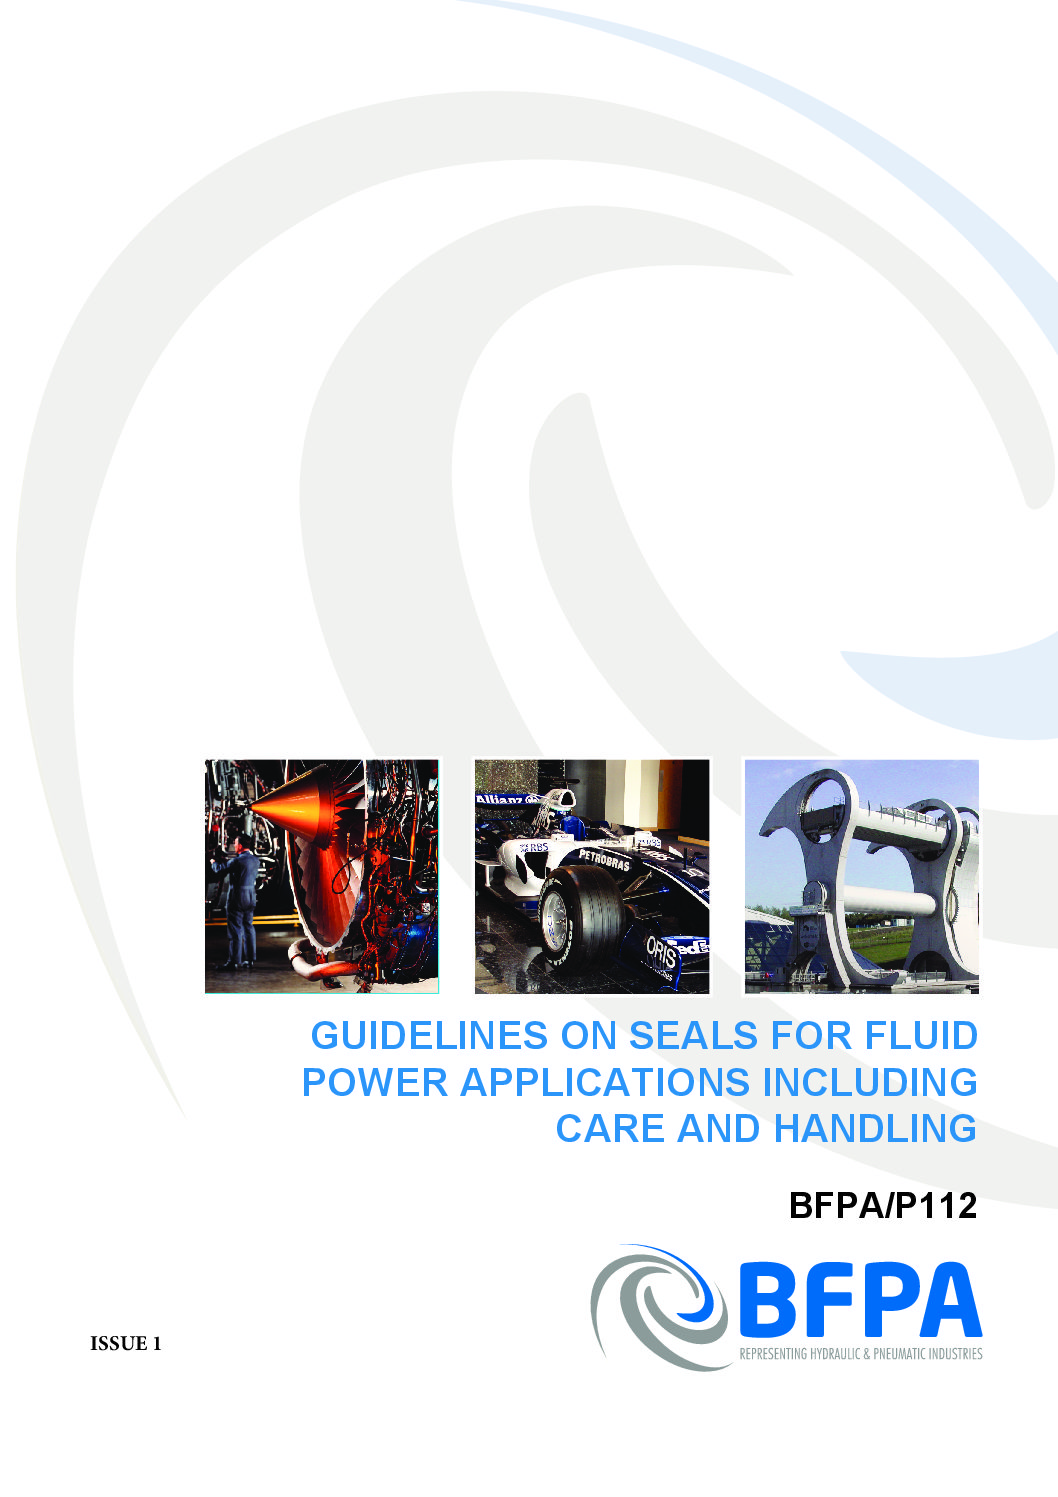 Guidelines on seals for fluid power applications including care and handling